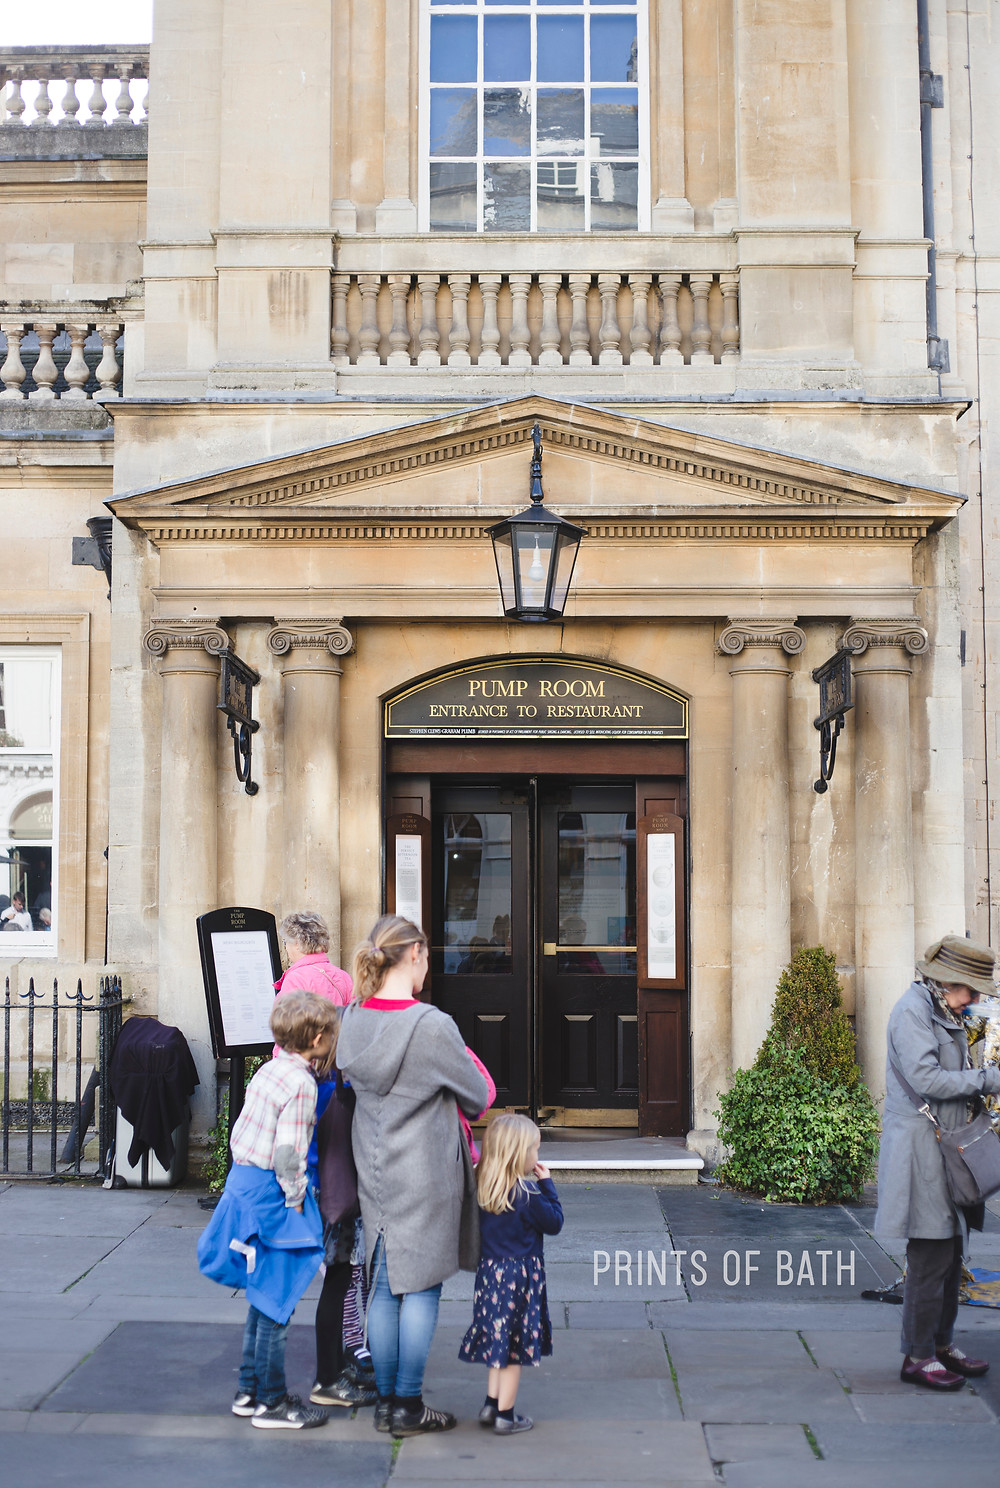 architecture, pump room, sign, england, britain, bath, georgian, roman, victorian, afternoon, tea, jane austen